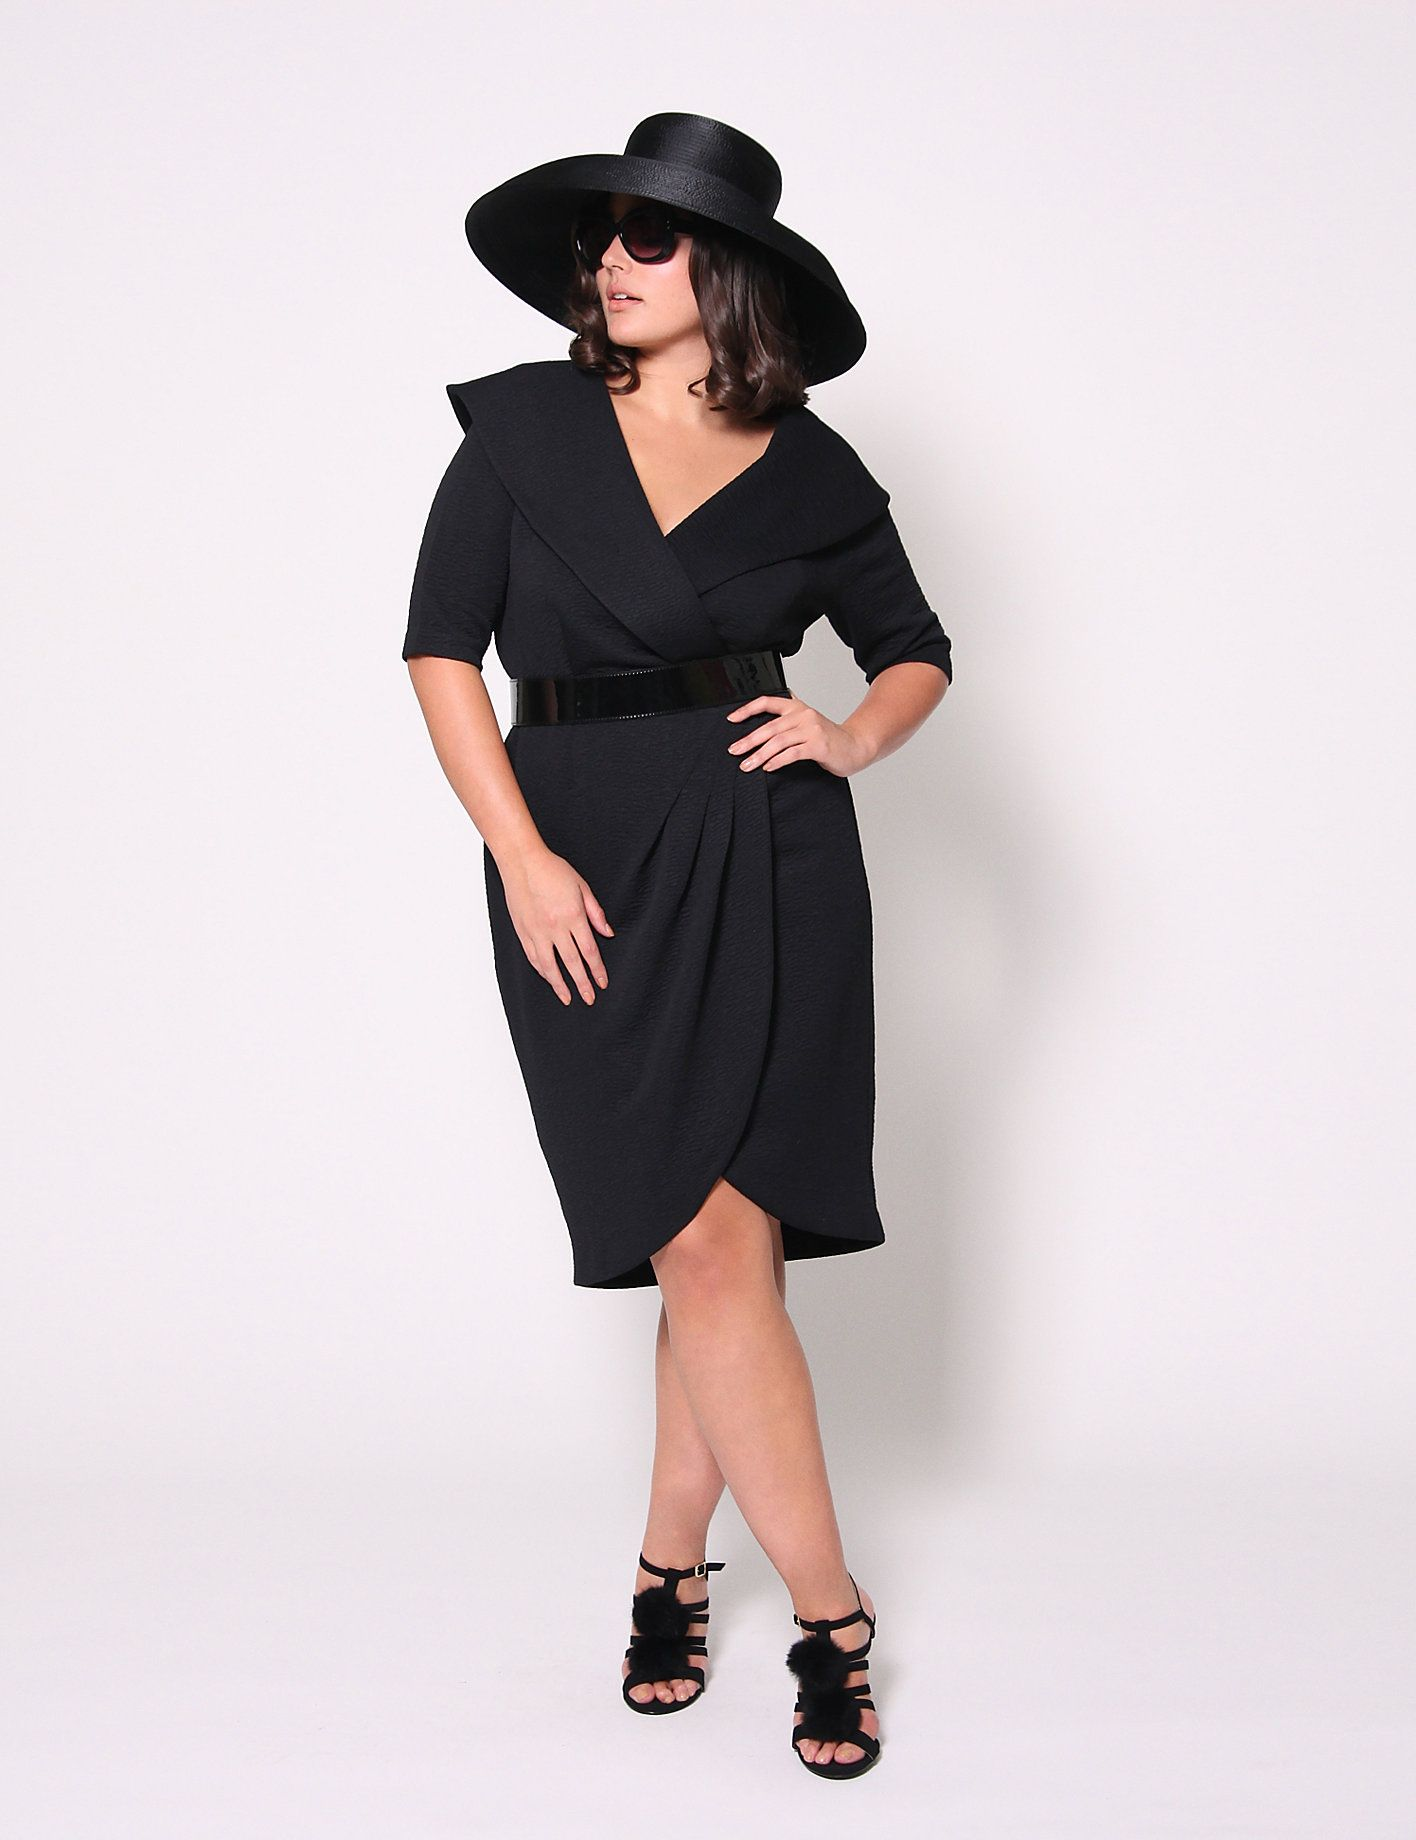 04a46cb79d404 Shop Christian Siriano - Plus Size Clothing Collection